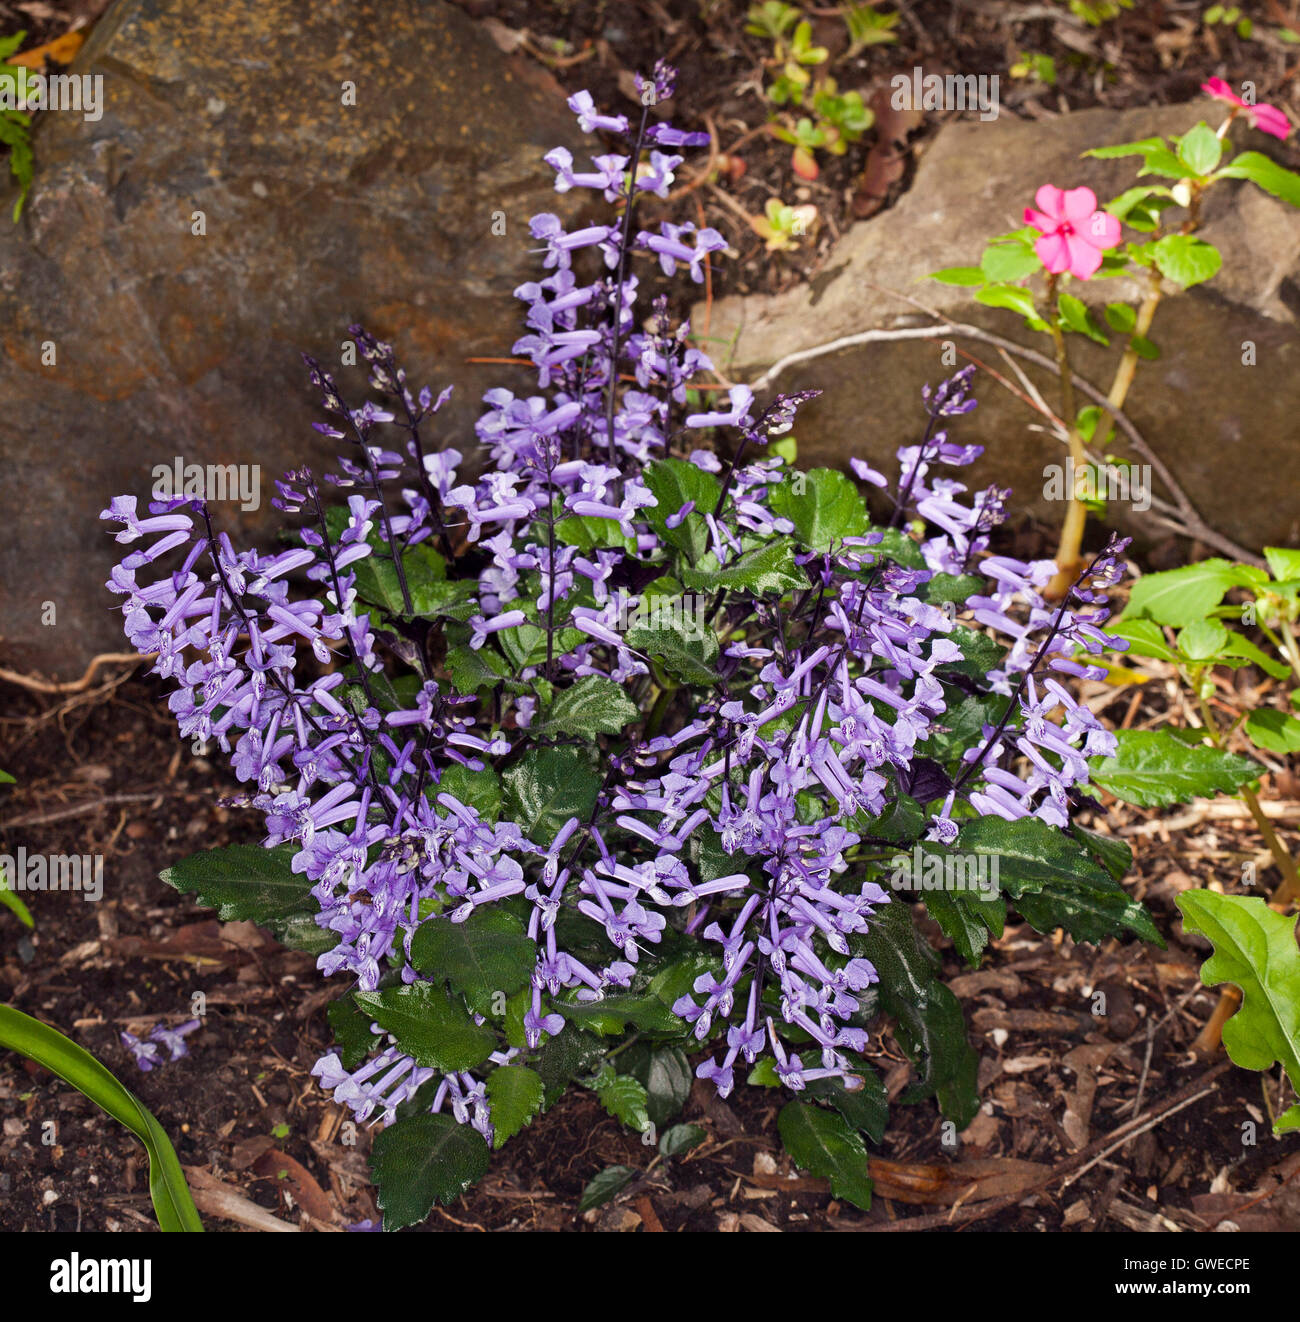 Cluster Of Spikes Of Bright Purple Flowers Dark Green Leaves Of